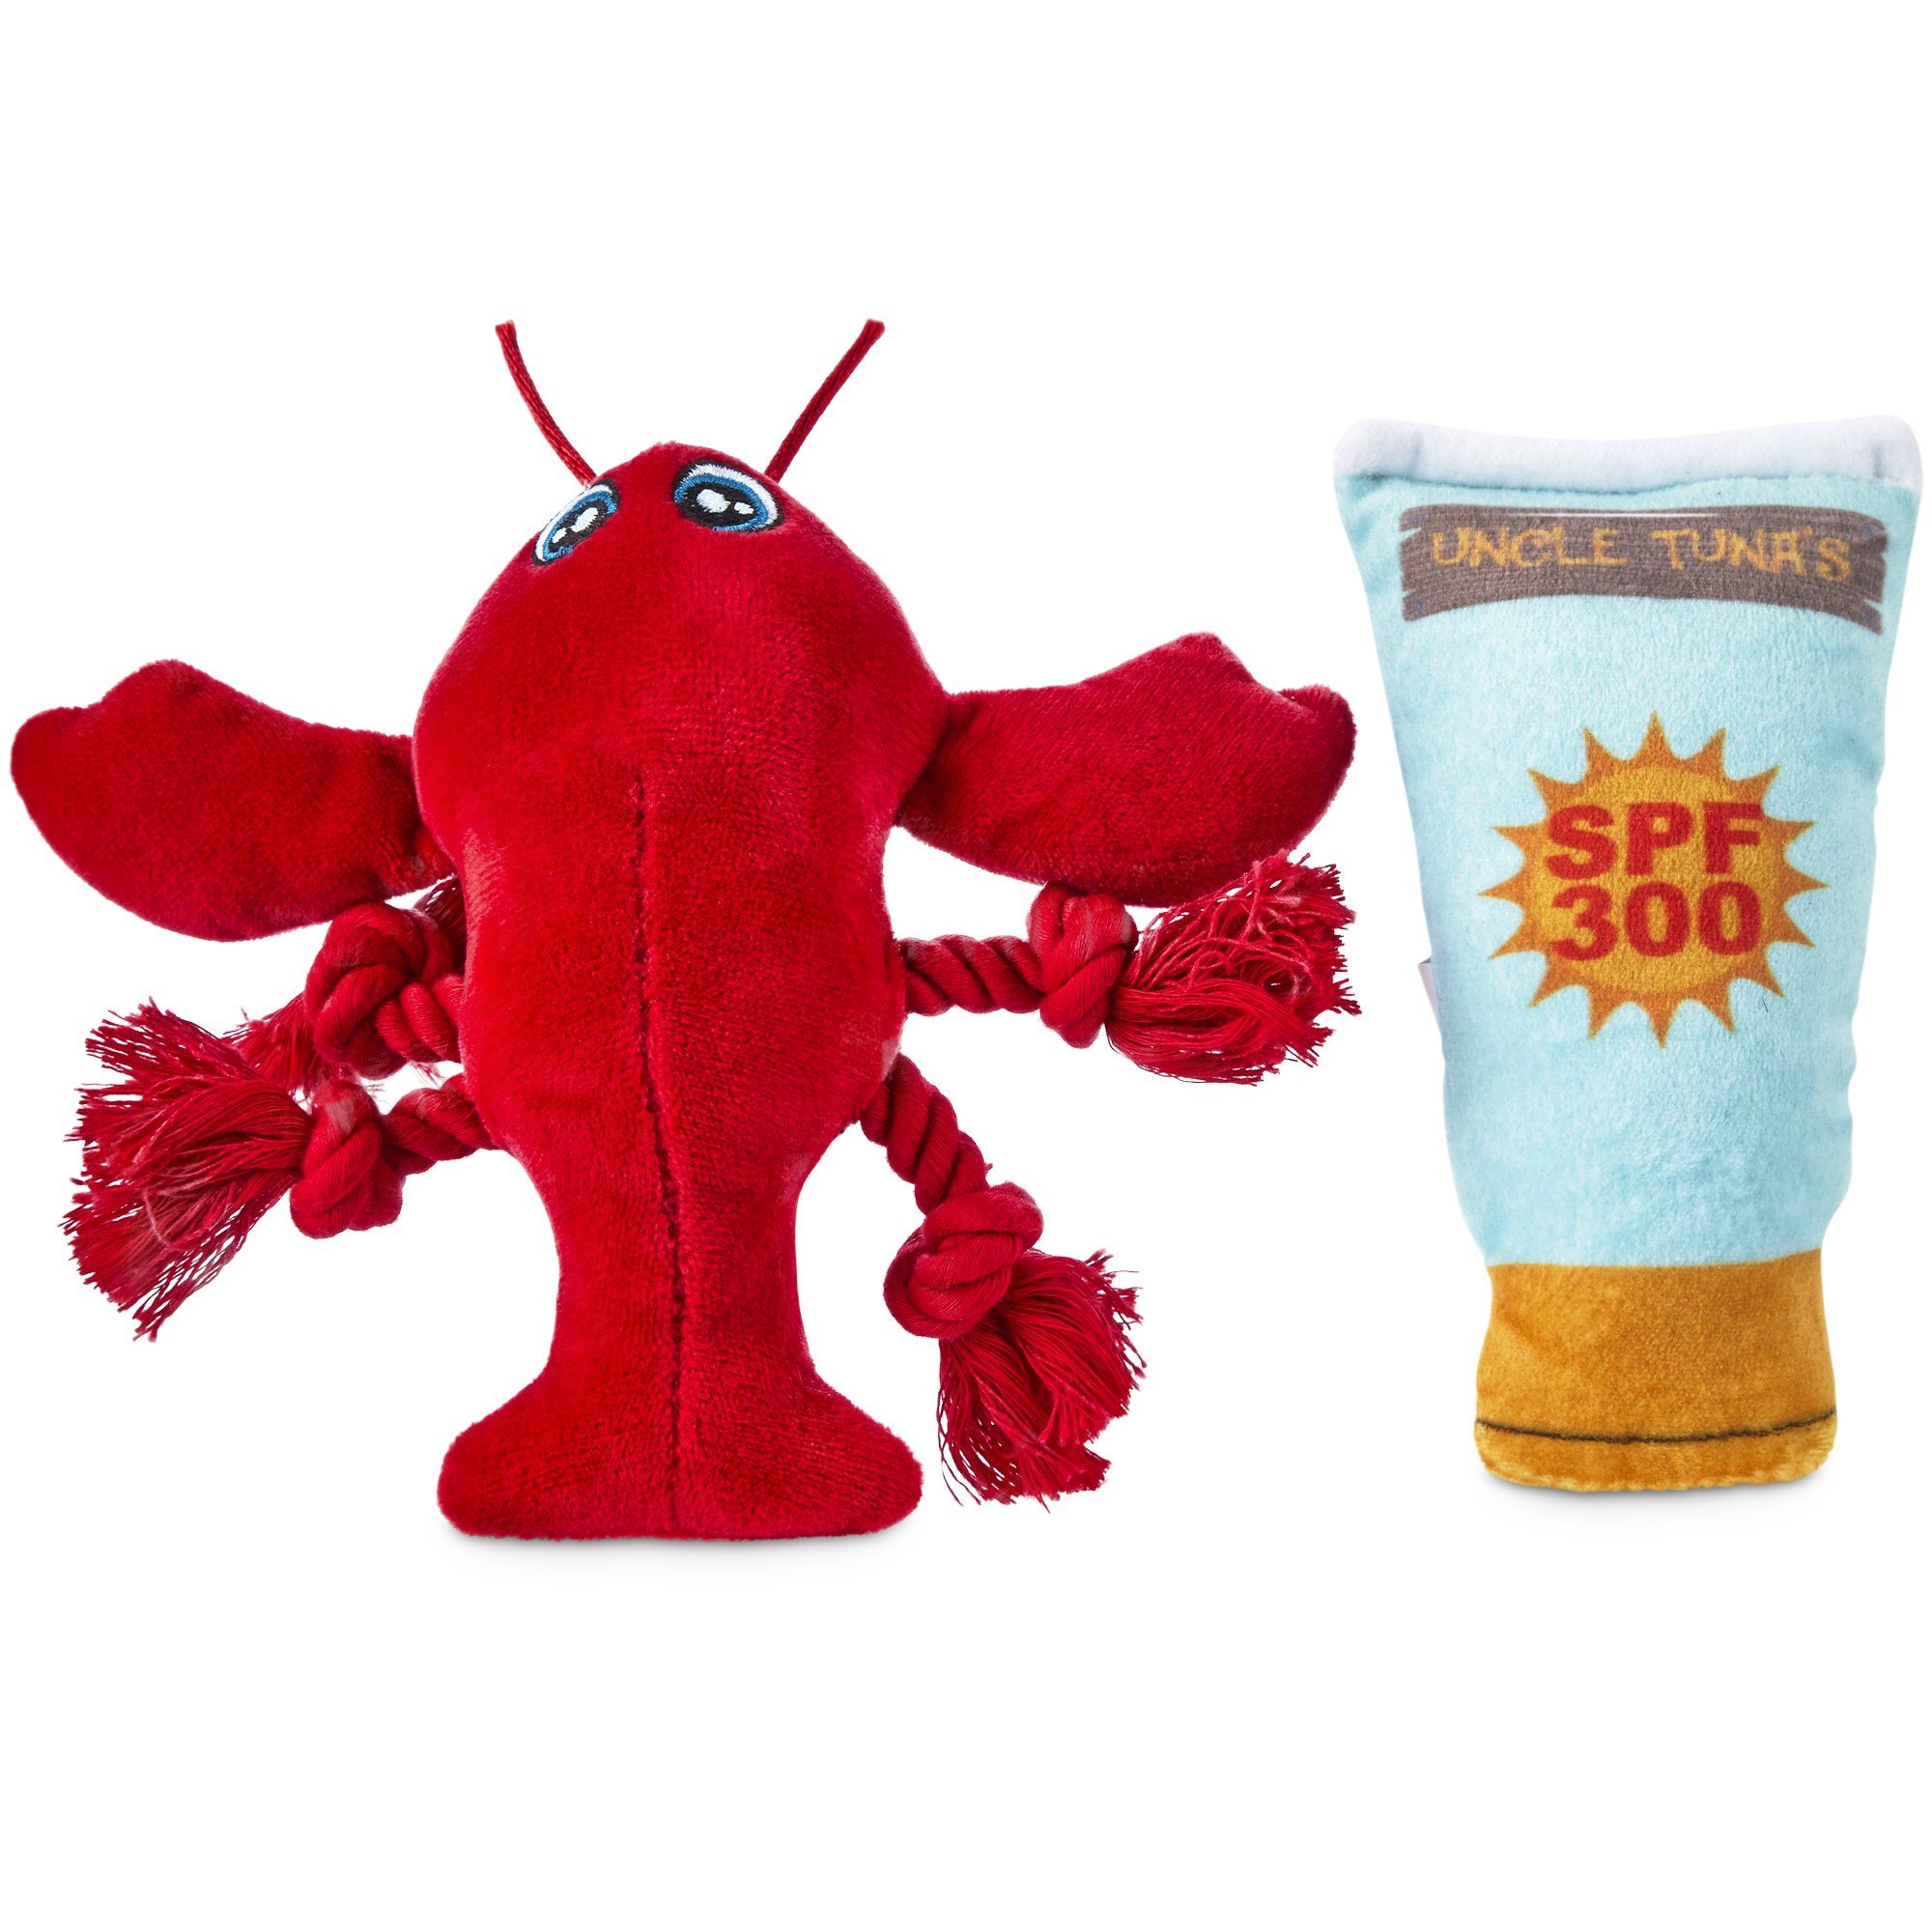 Dog toys images  Get your canine onboard with active summer fun by playing fetch with